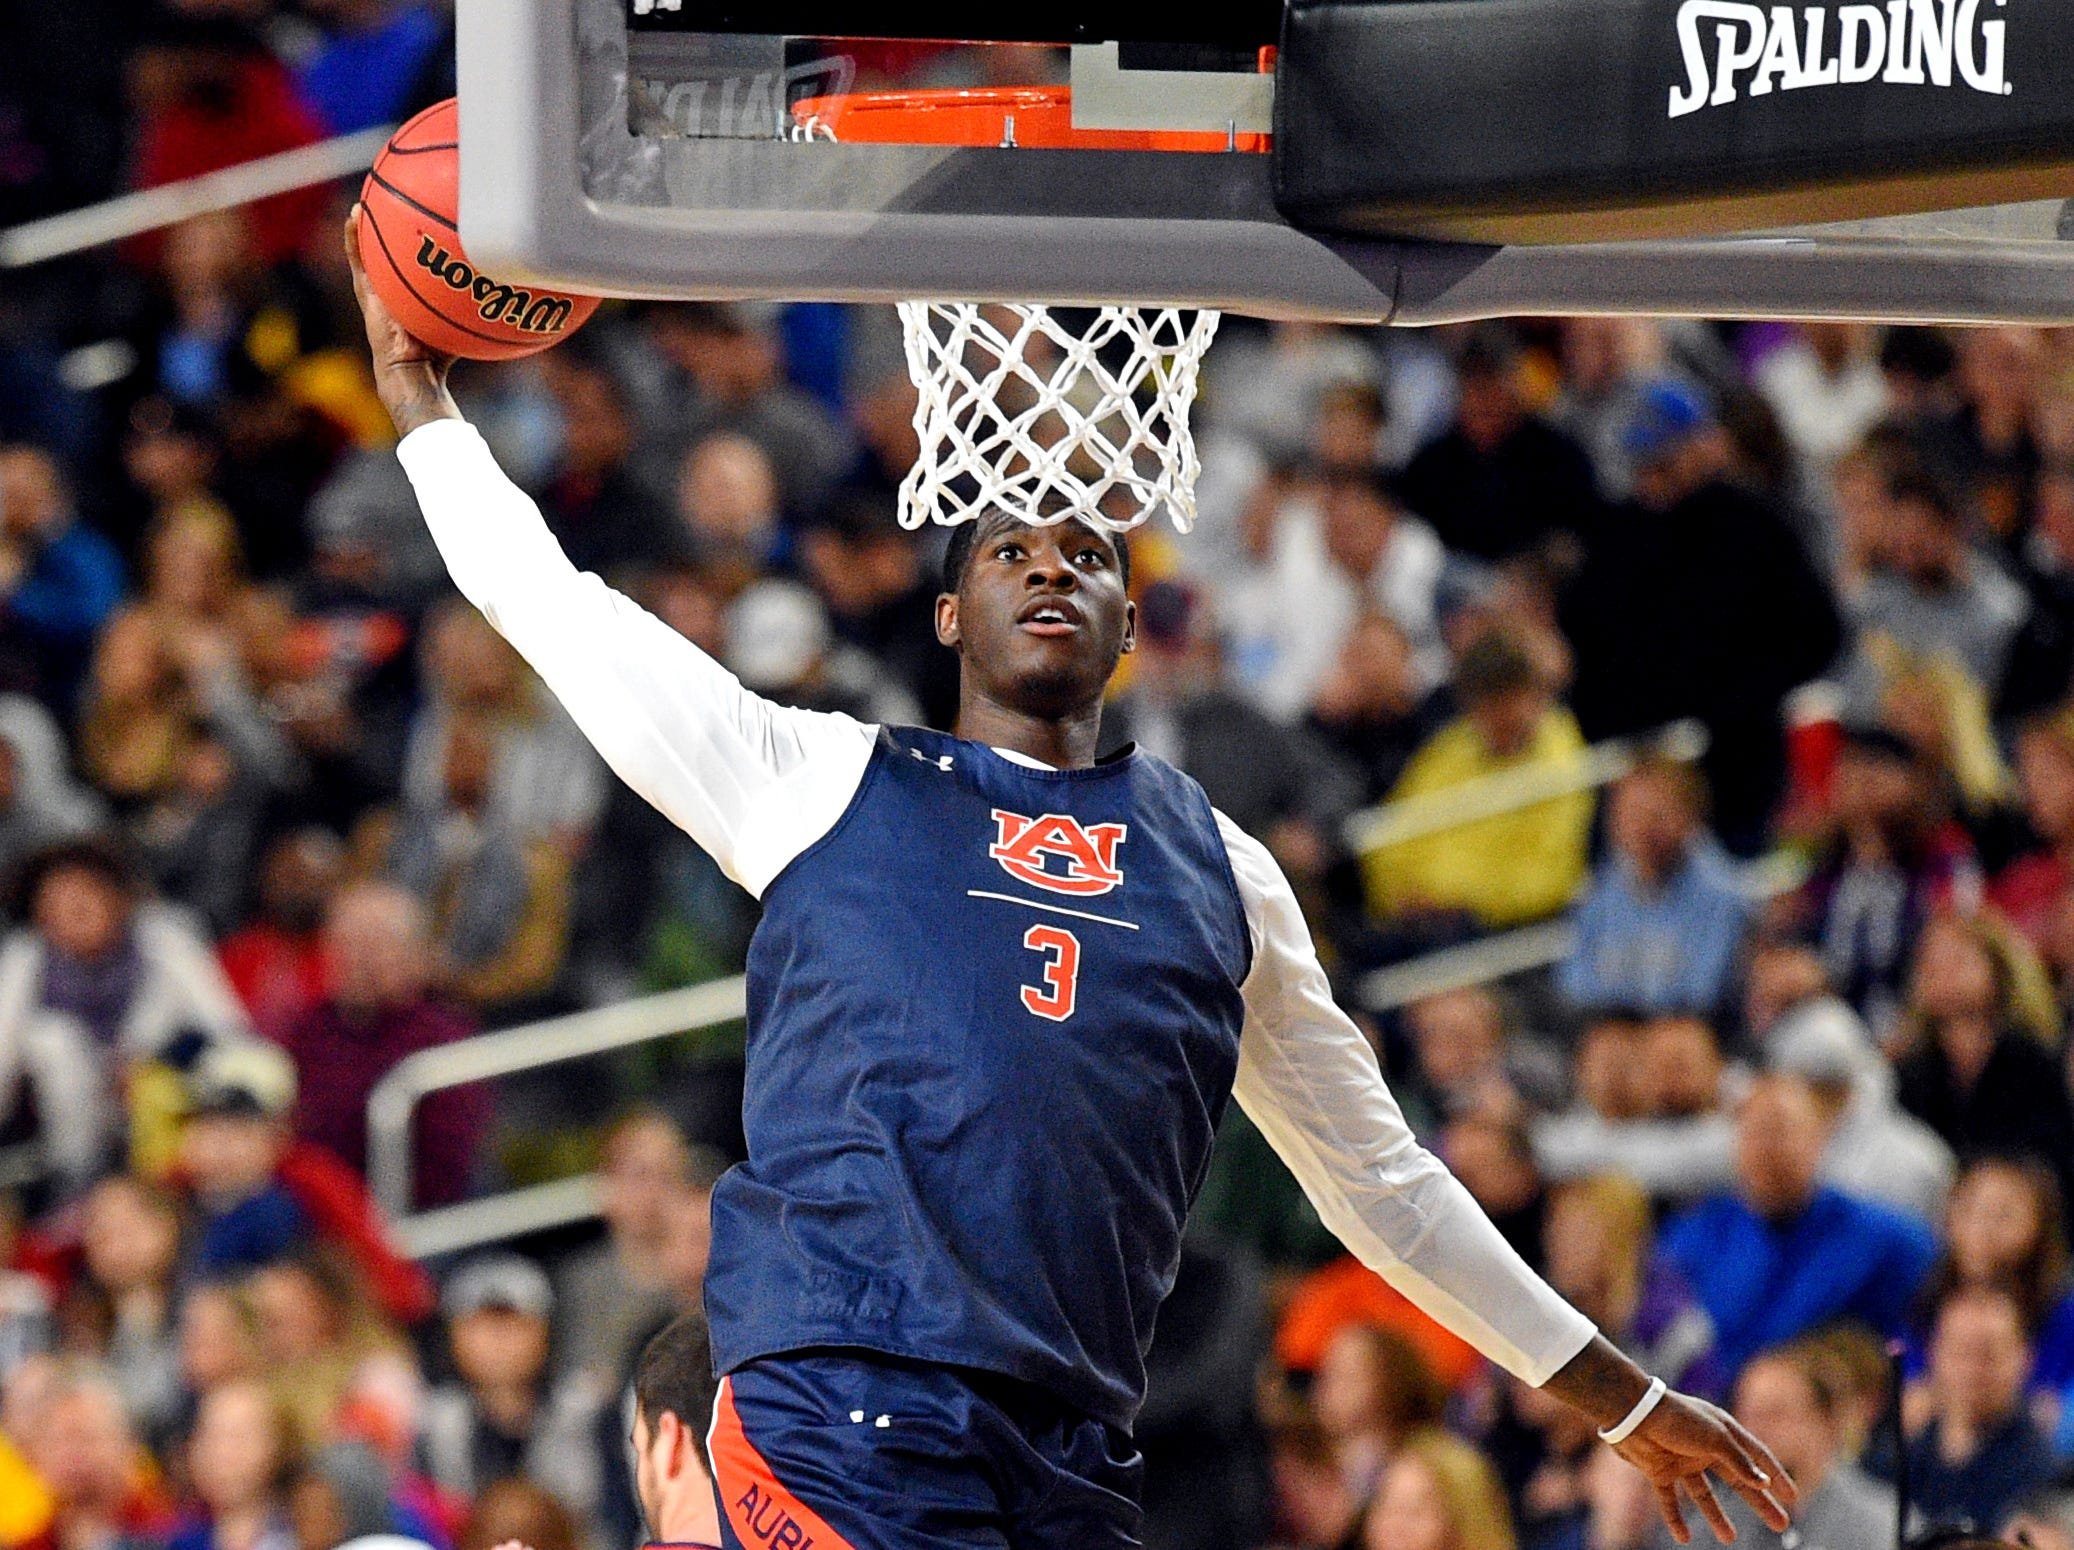 Apr 5, 2019; Minneapolis, MN, USA; Auburn Tigers forward Danjel Purifoy (3) dunks the ball during practice for the 2019 men's Final Four at US Bank Stadium. Mandatory Credit: Bob Donnan-USA TODAY Sports